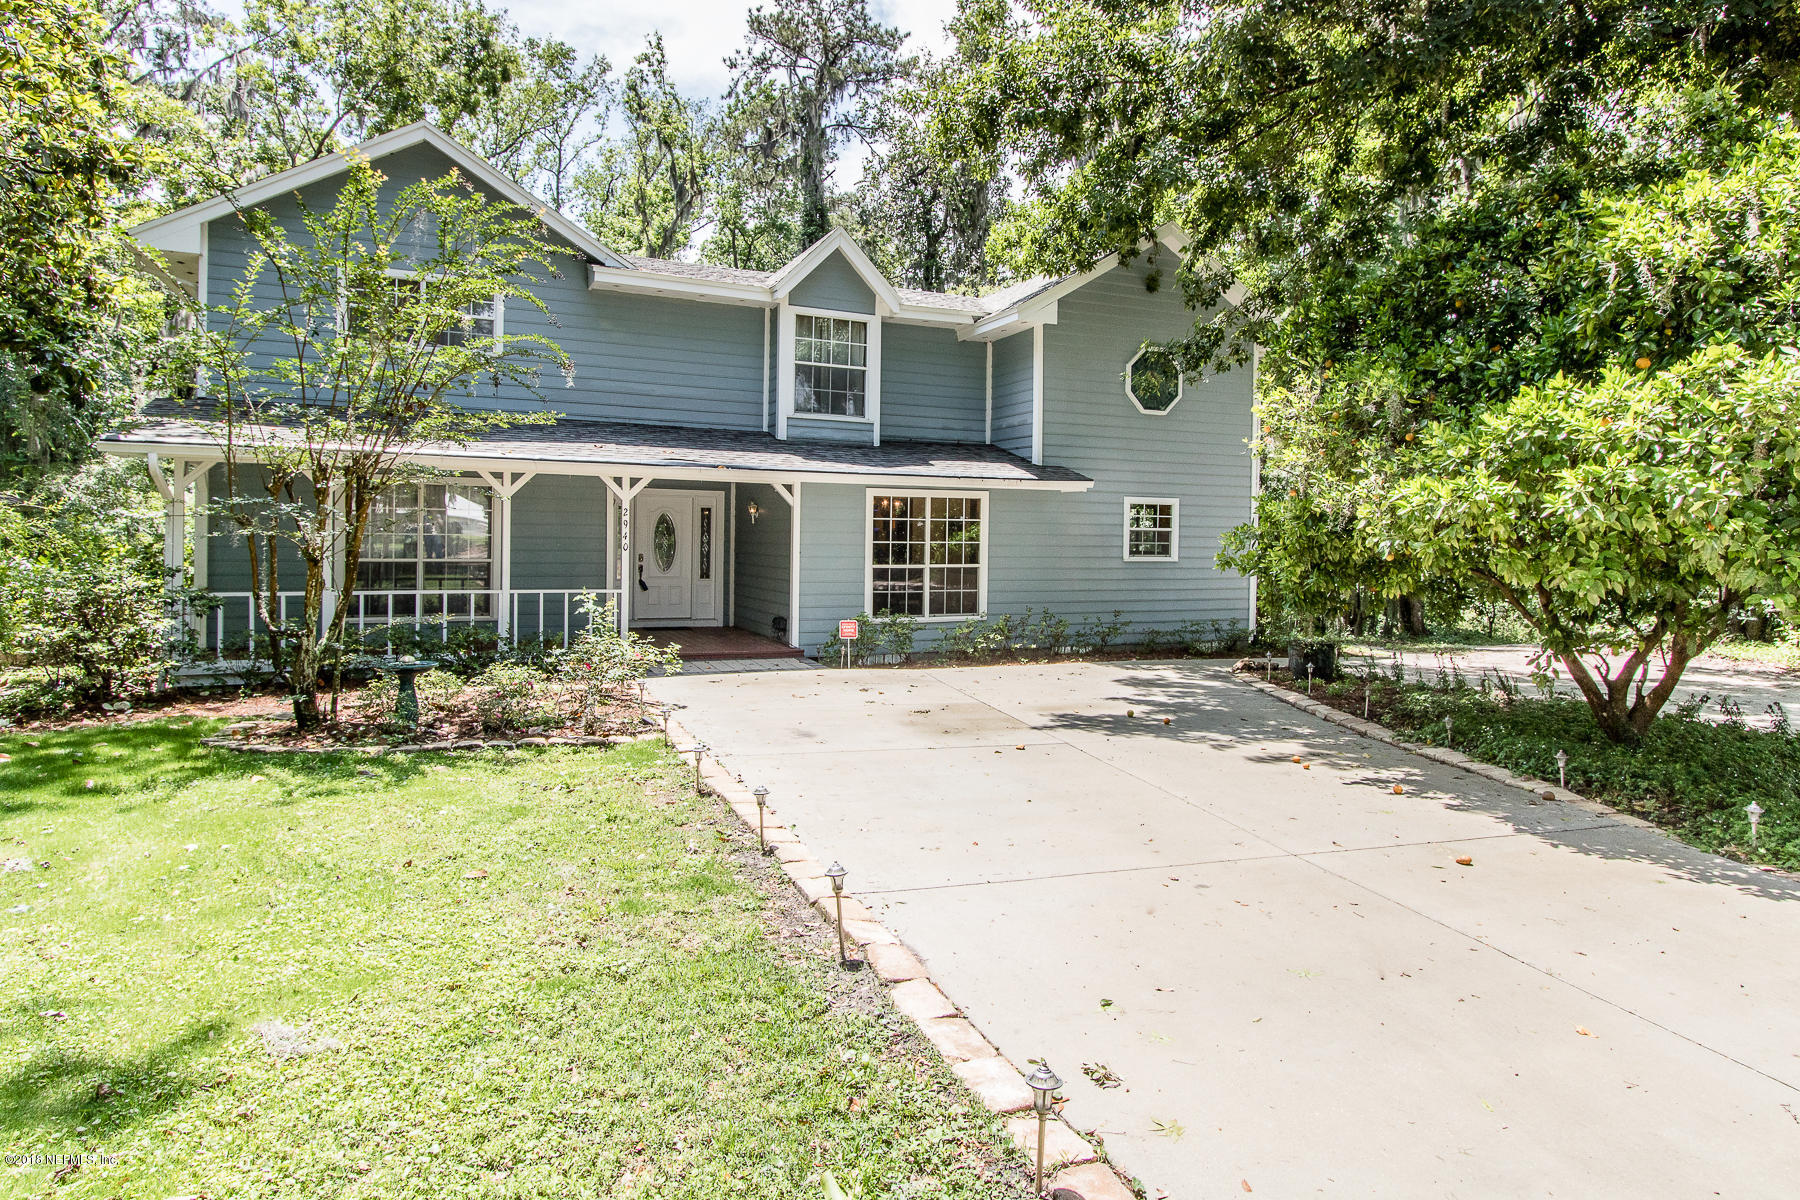 2940 BAY, ORANGE PARK, FLORIDA 32065, 4 Bedrooms Bedrooms, ,3 BathroomsBathrooms,Residential - single family,For sale,BAY,933176